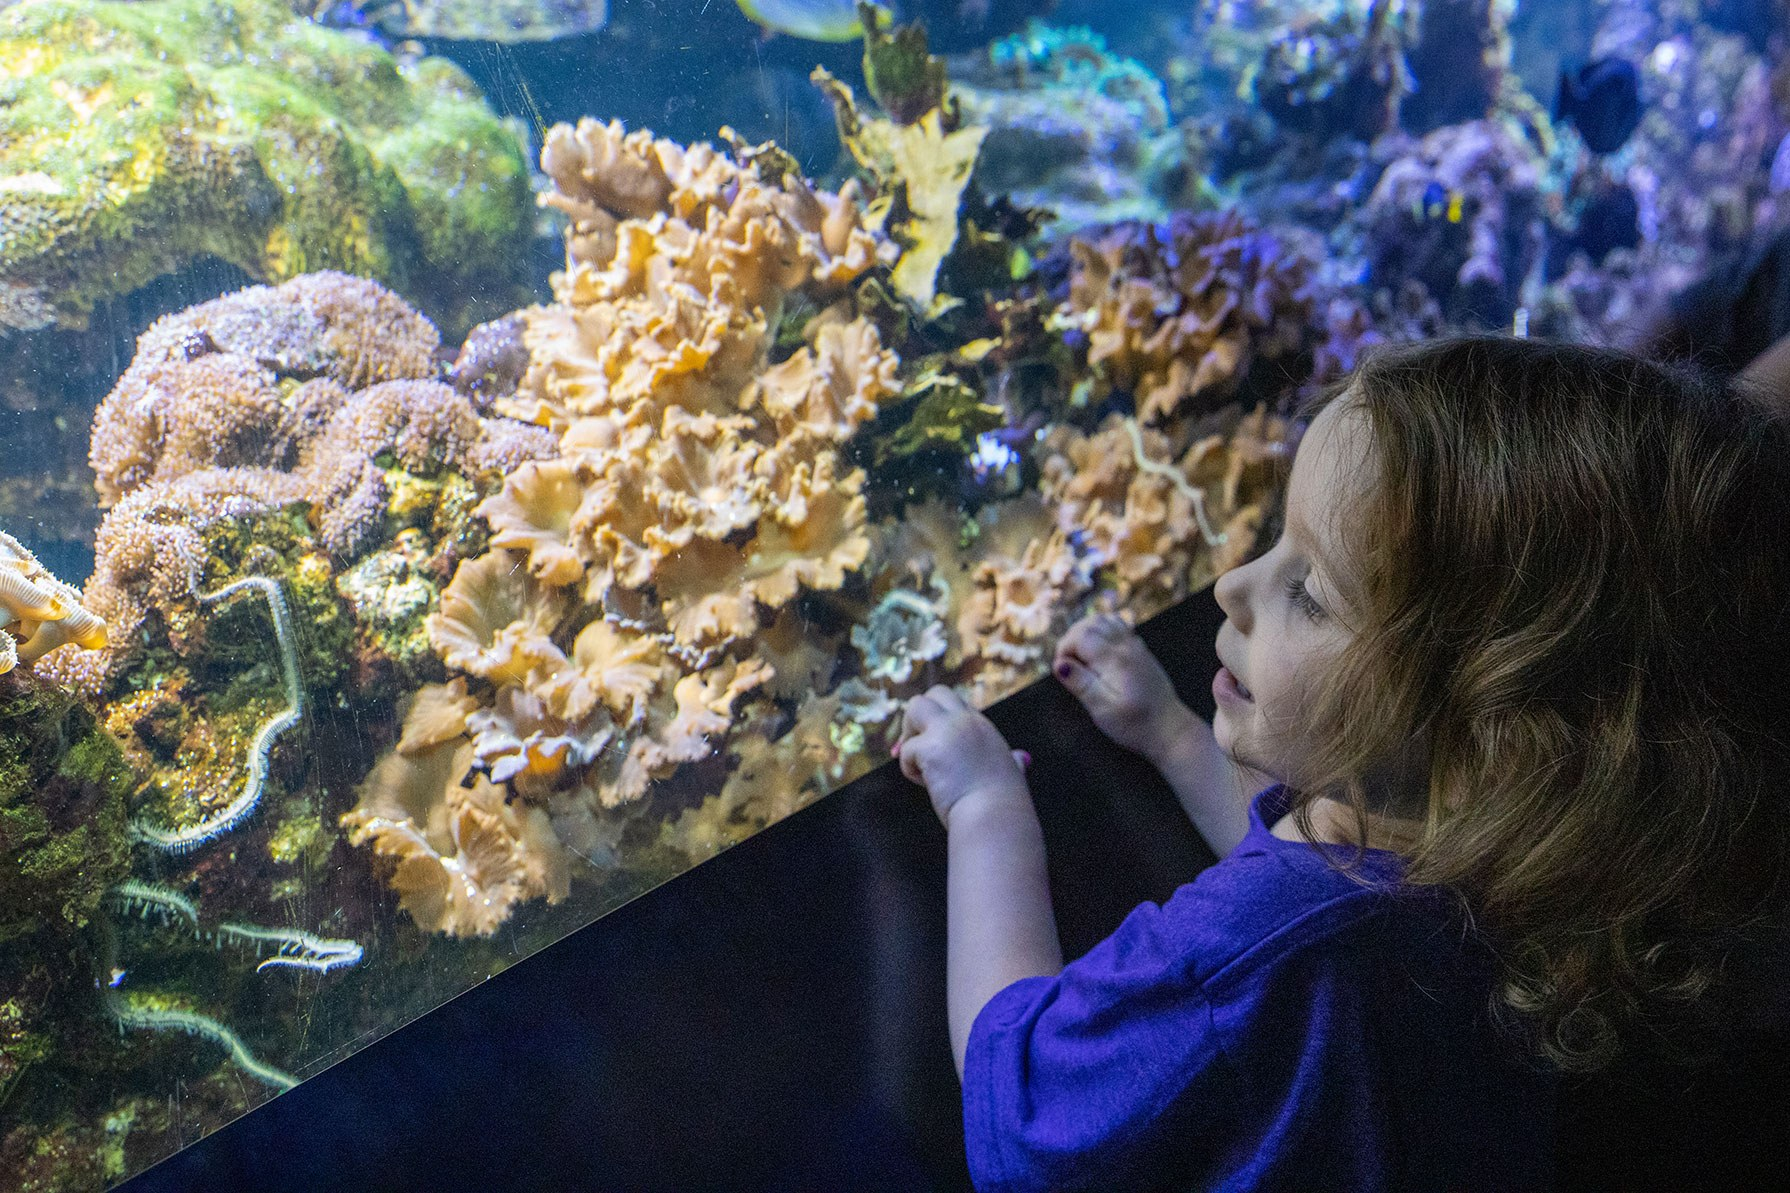 Child Looking at Coral in an Exhibit